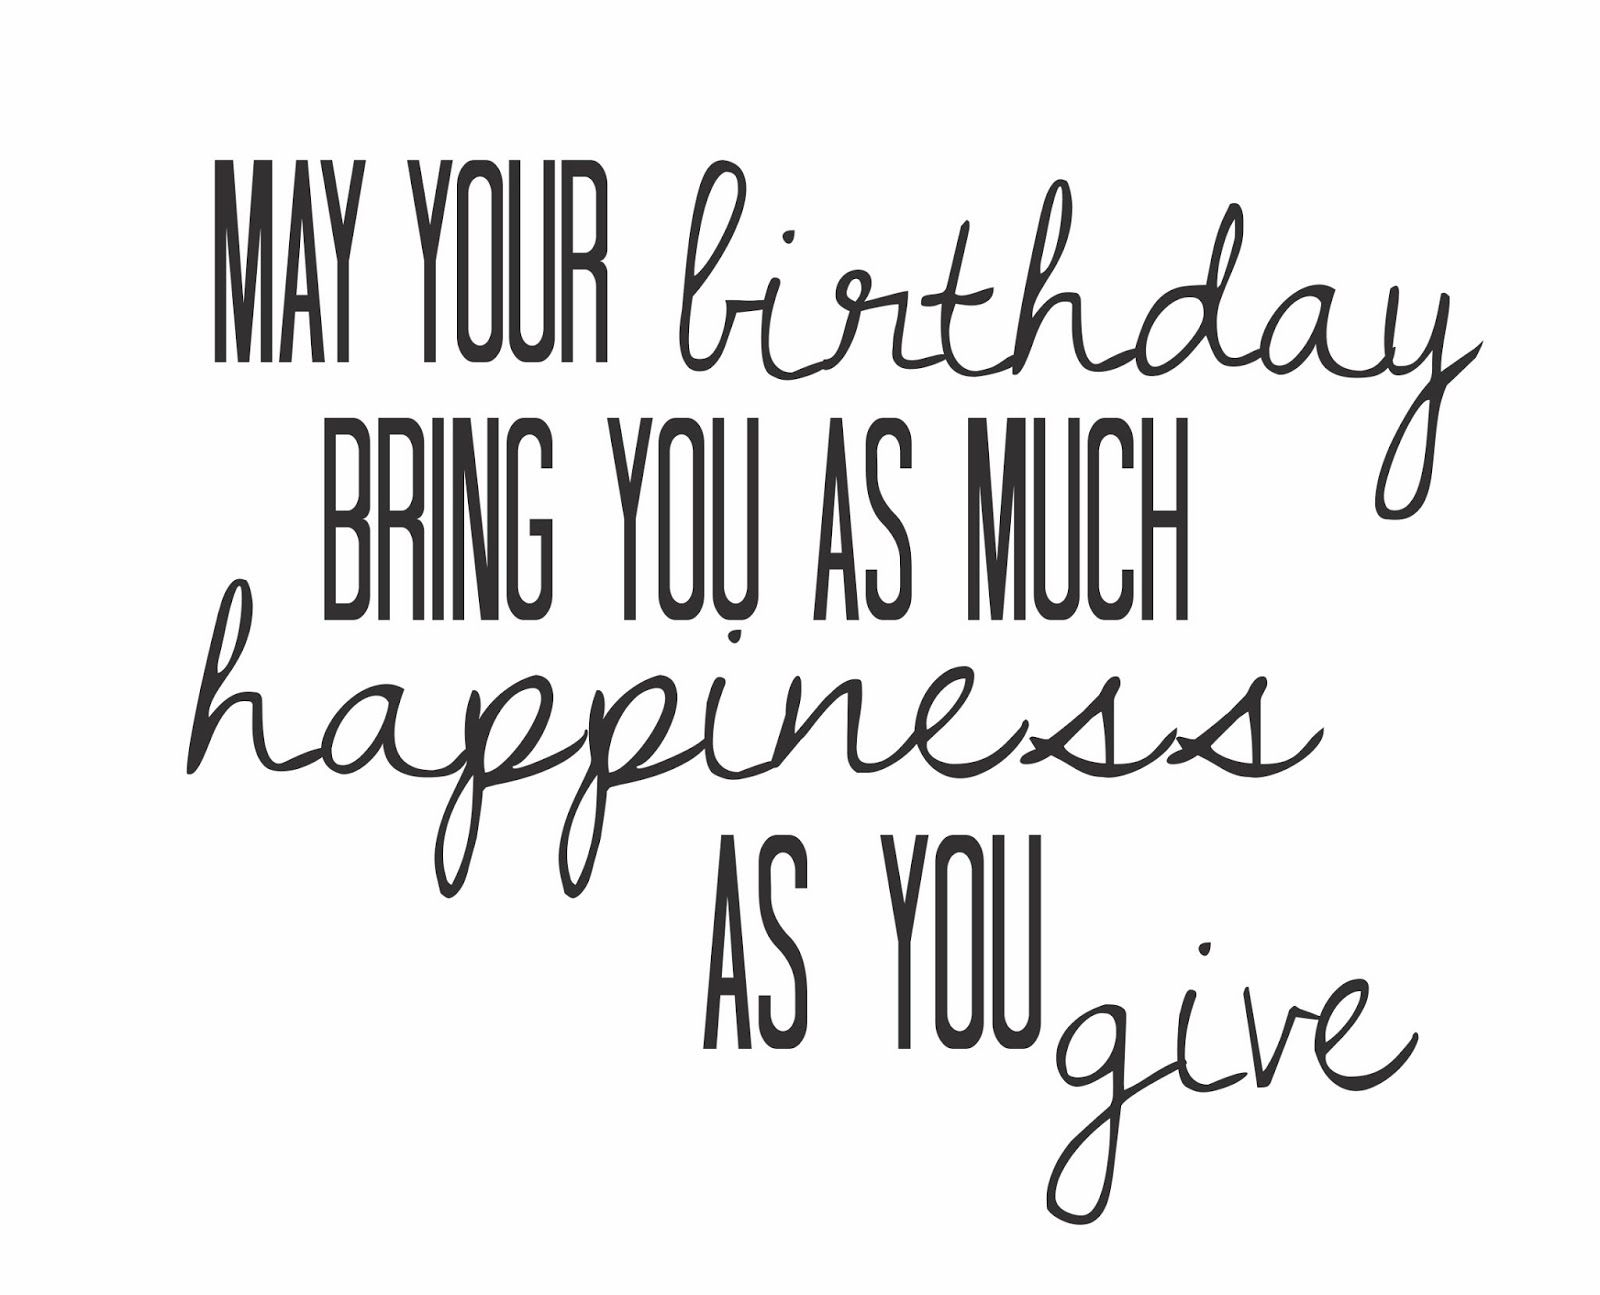 Related image Happy birthday brother quotes, Happy